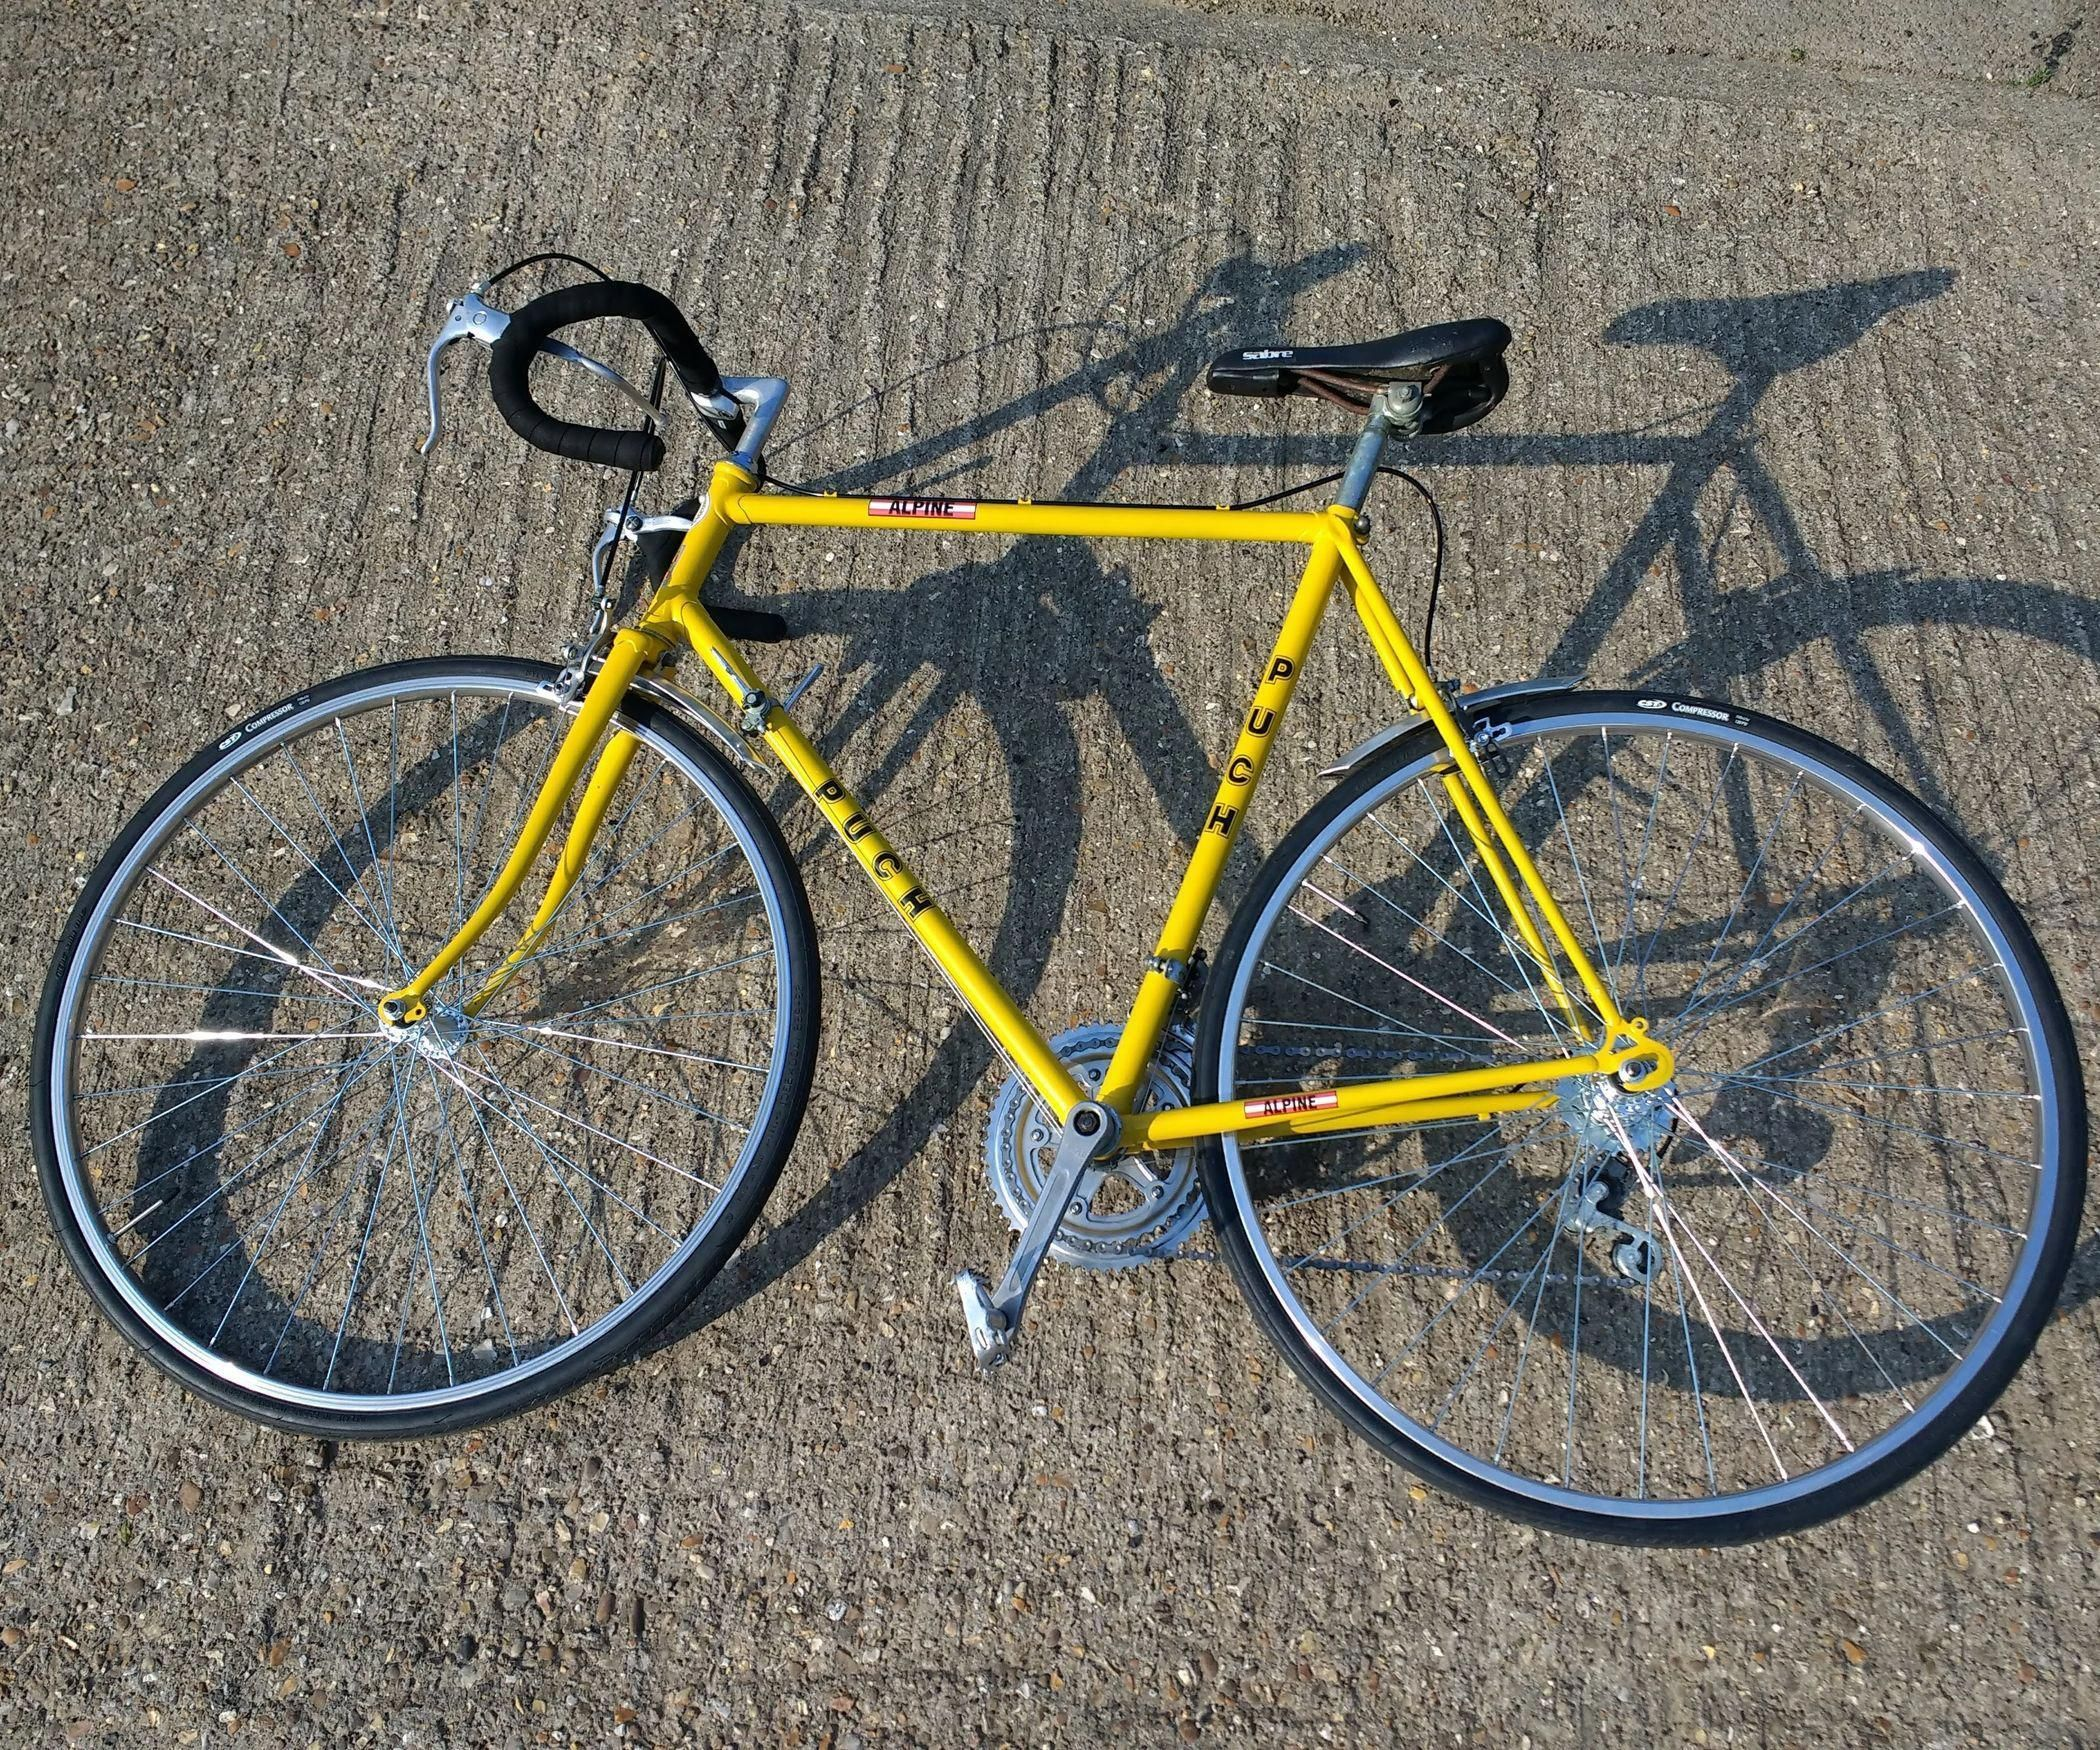 Restore An Old Bicycle Old Bicycle Bicycle Bicycle Maintenance